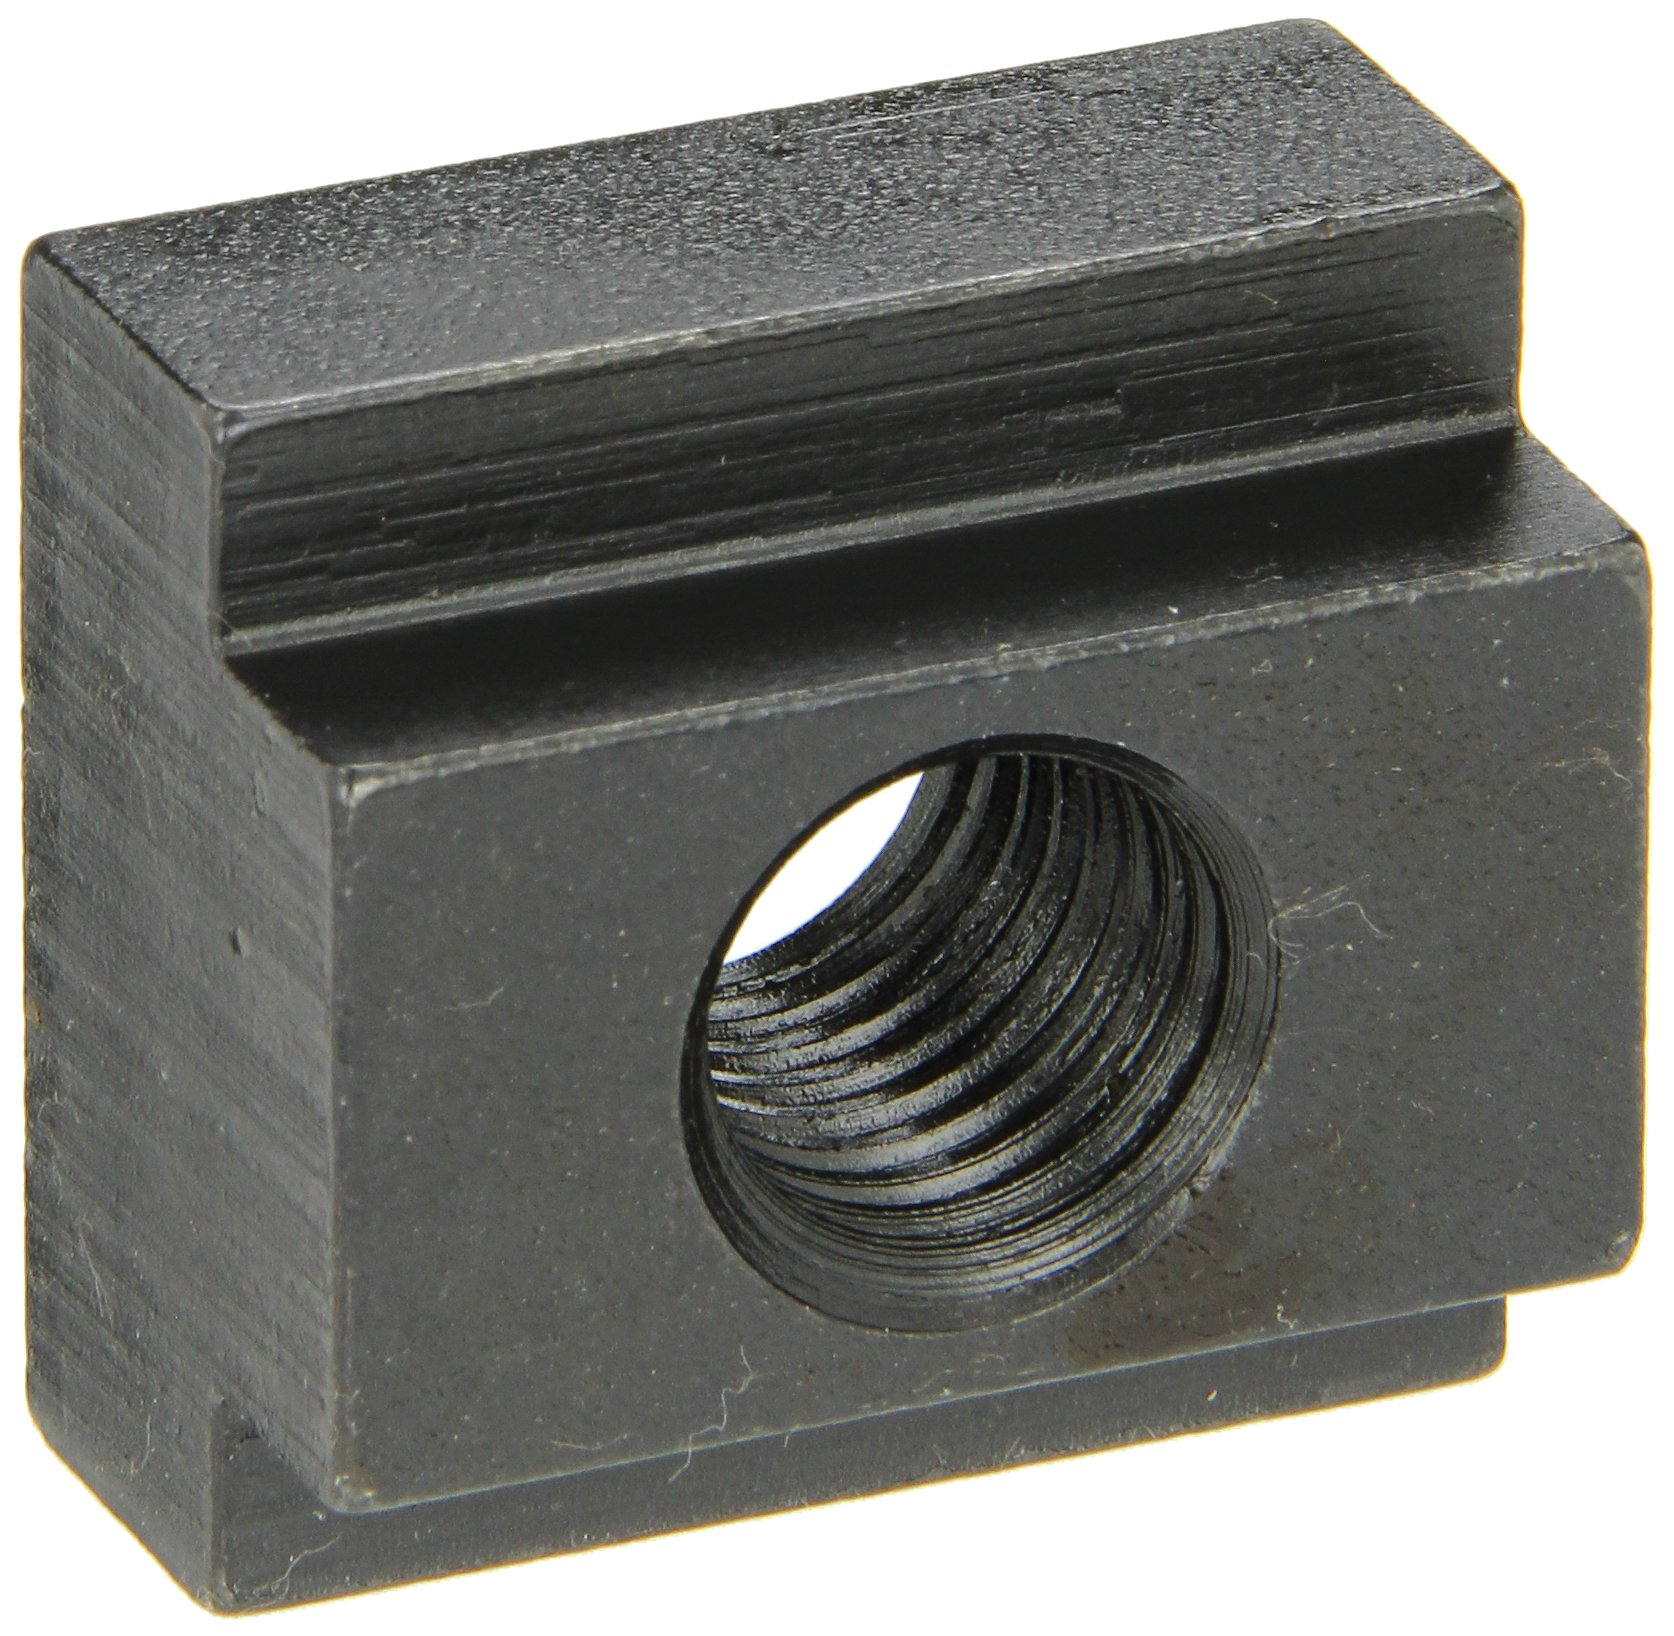 1018 Steel T-Slot Nut, Black Oxide Finish, Grade 10, 3/4''-10 Threads, 1'' Height, 1'' Slot Depth, Made in US (Pack of 2) by Small Parts